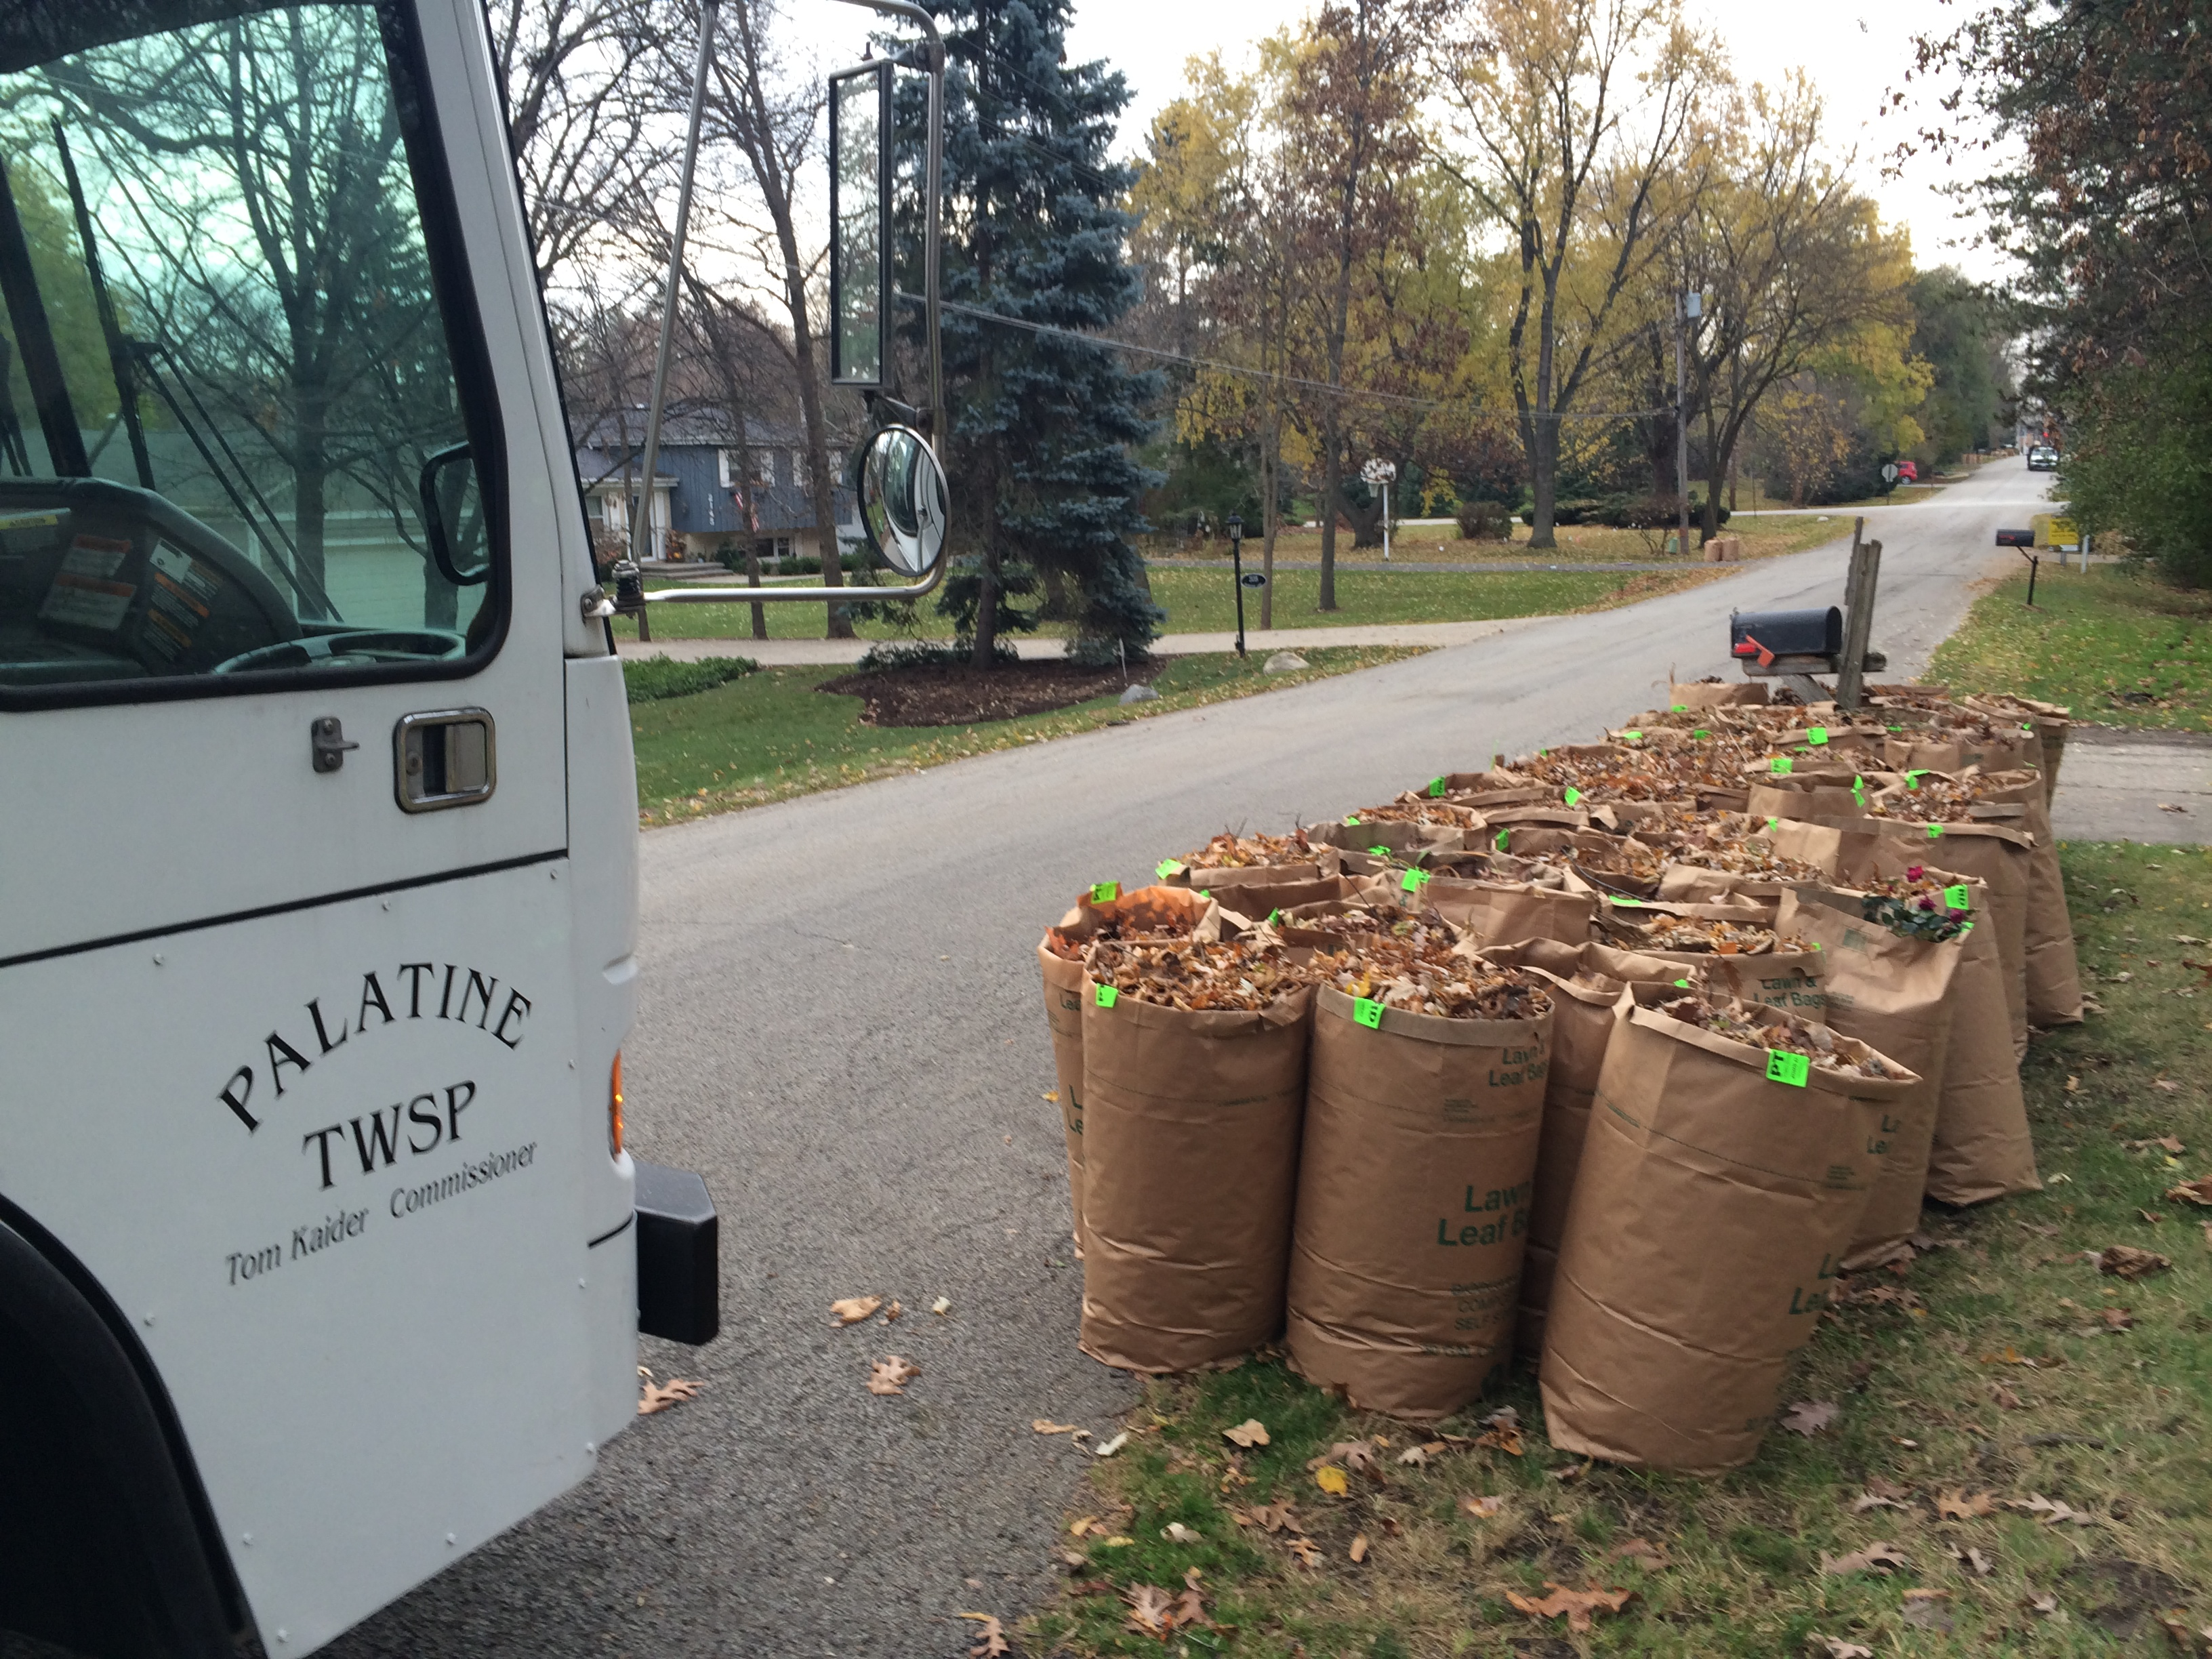 Beginning April 3 2017 We Will Resume Our Yard Waste Program By Picking Up The Kraft Paper Lawn And Leaf Bags This Service Continue Through November